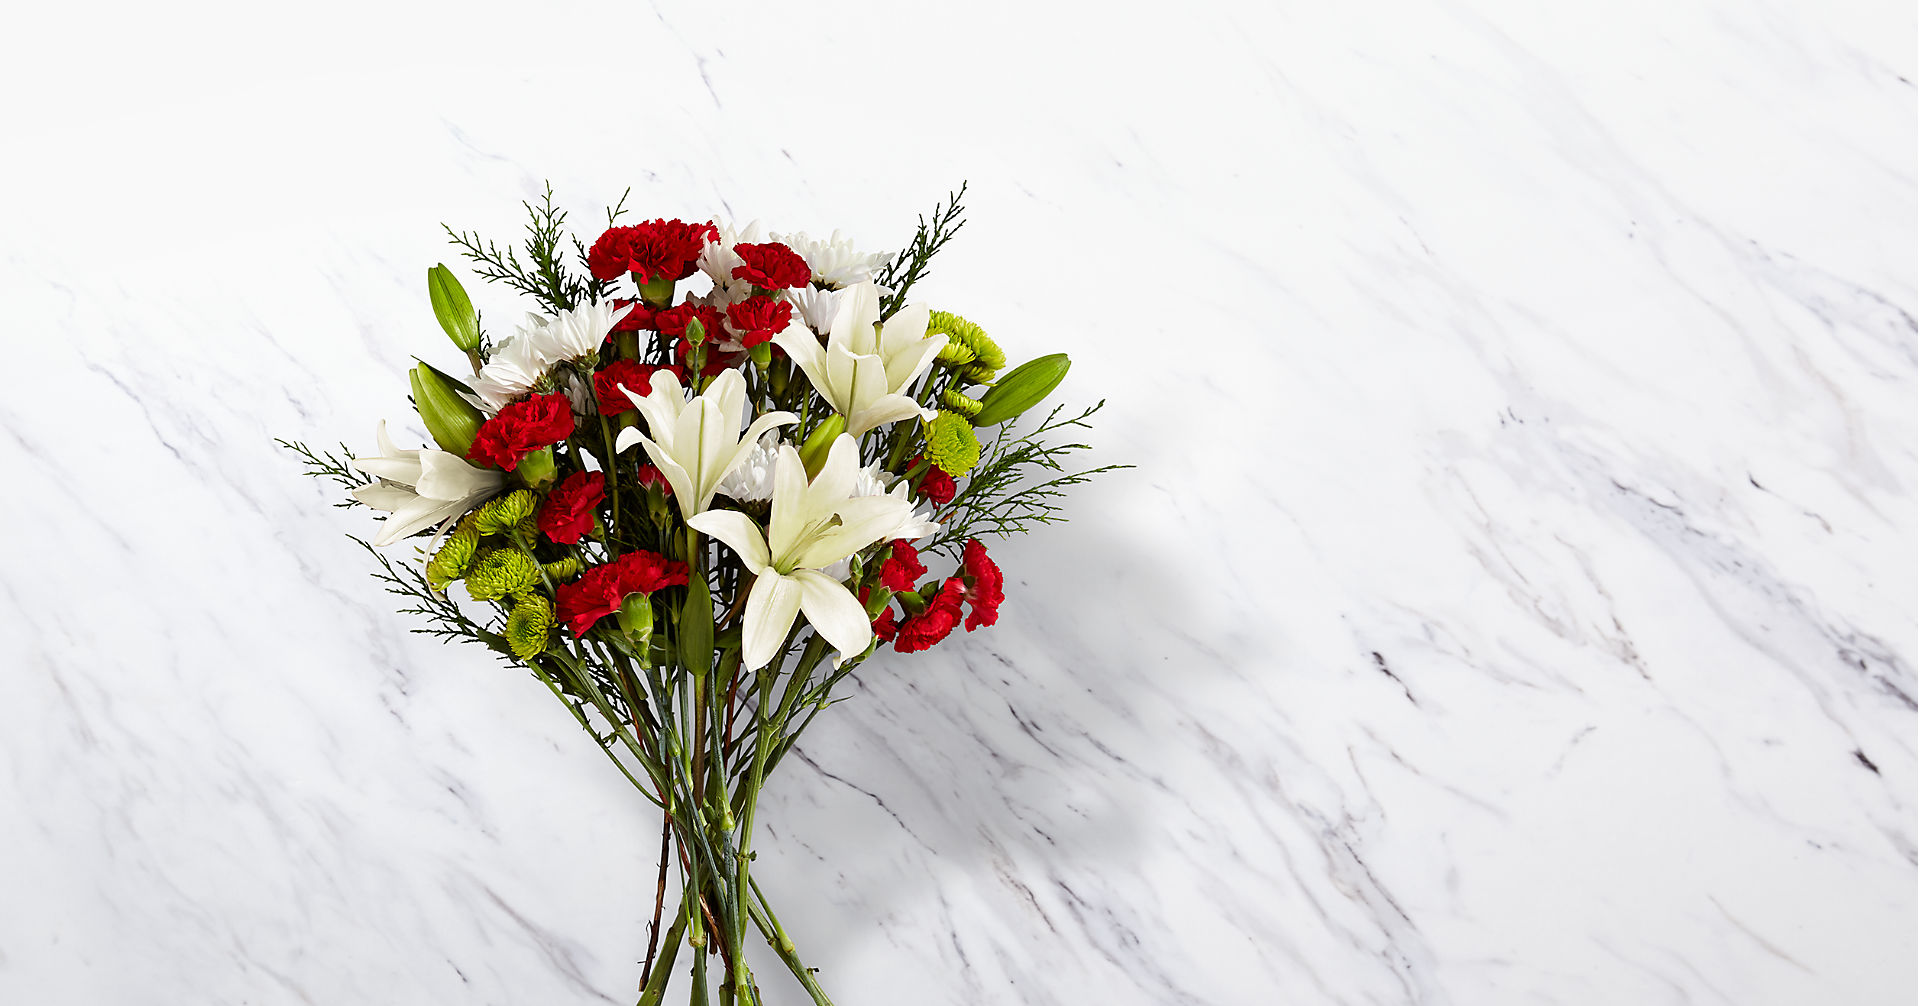 Open Your Heart Holiday Bouquet - Image 1 Of 2